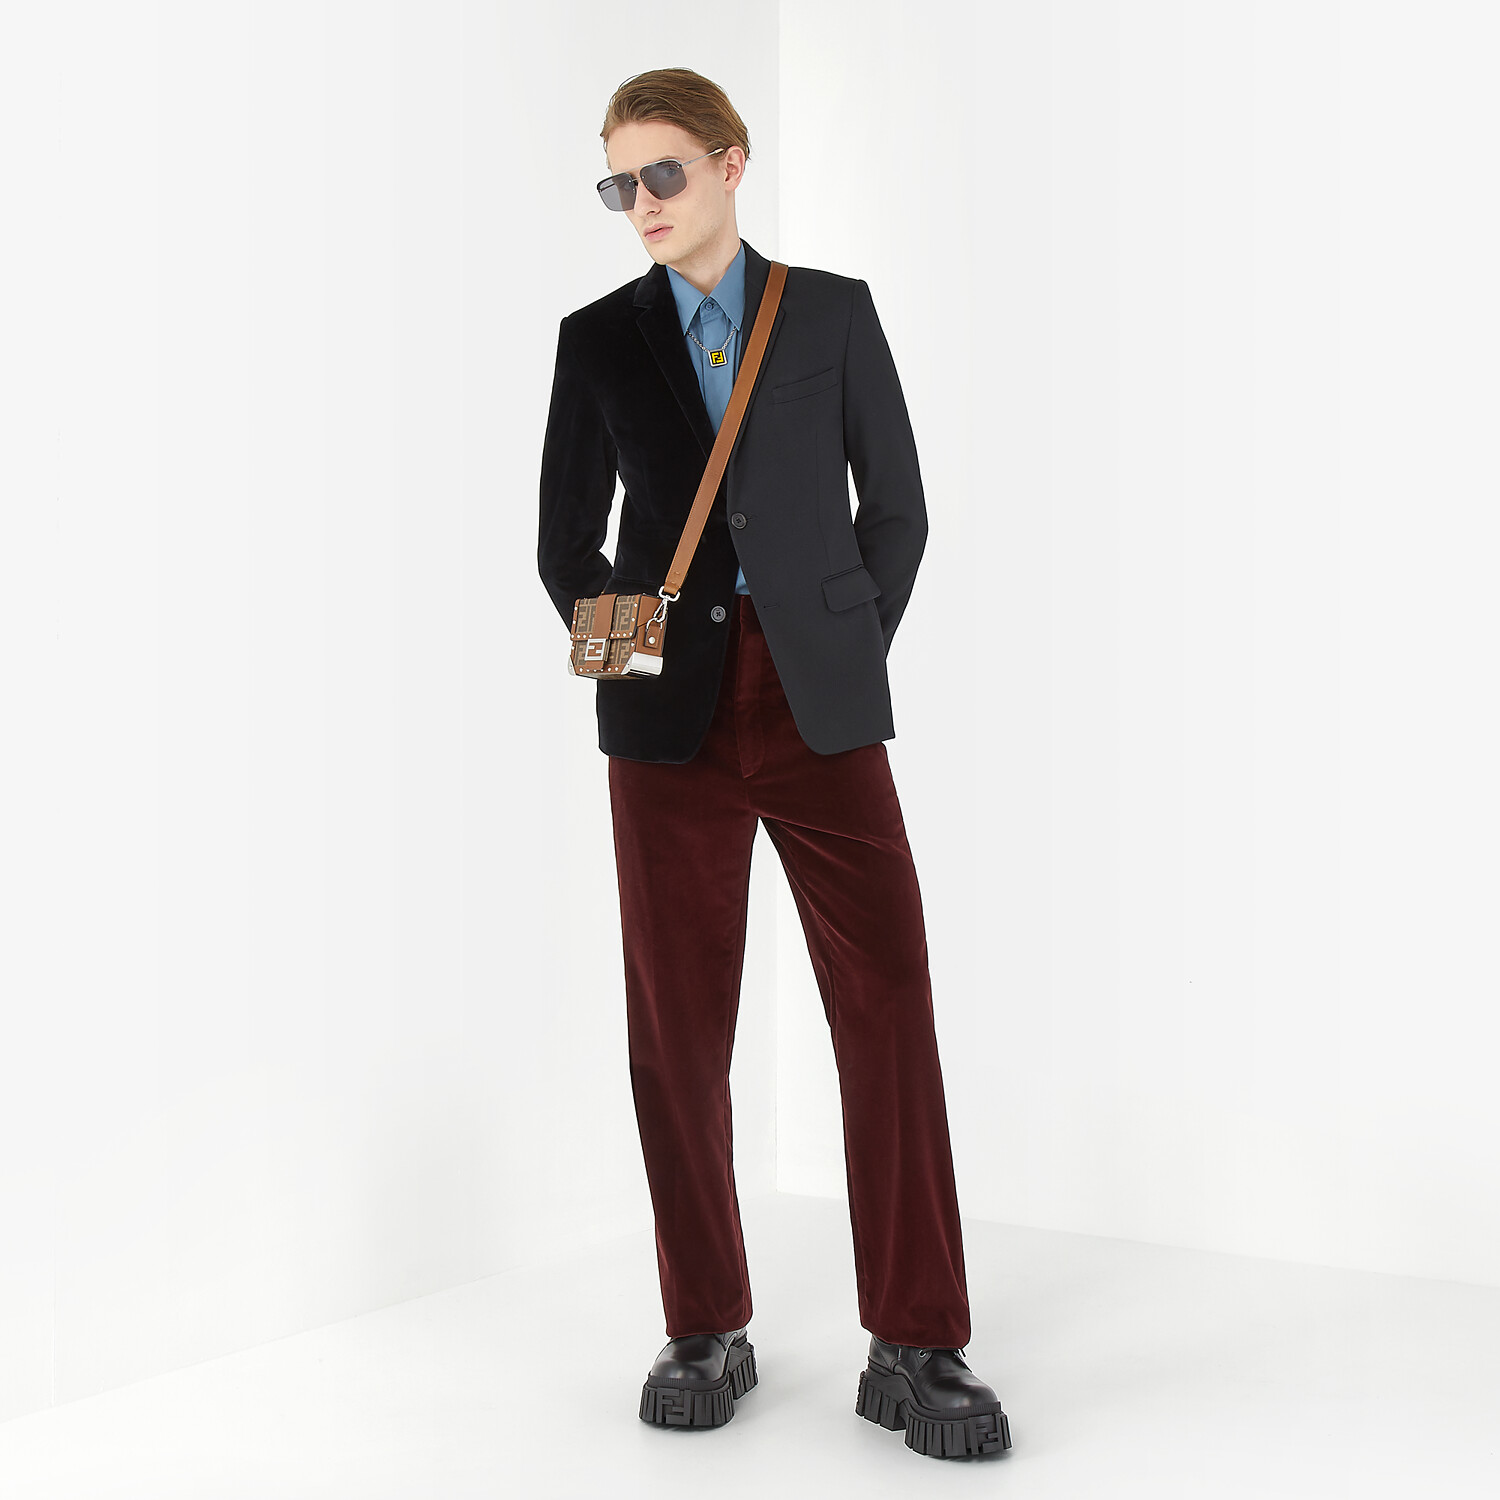 FENDI TROUSERS - Burgundy velvet trousers - view 4 detail